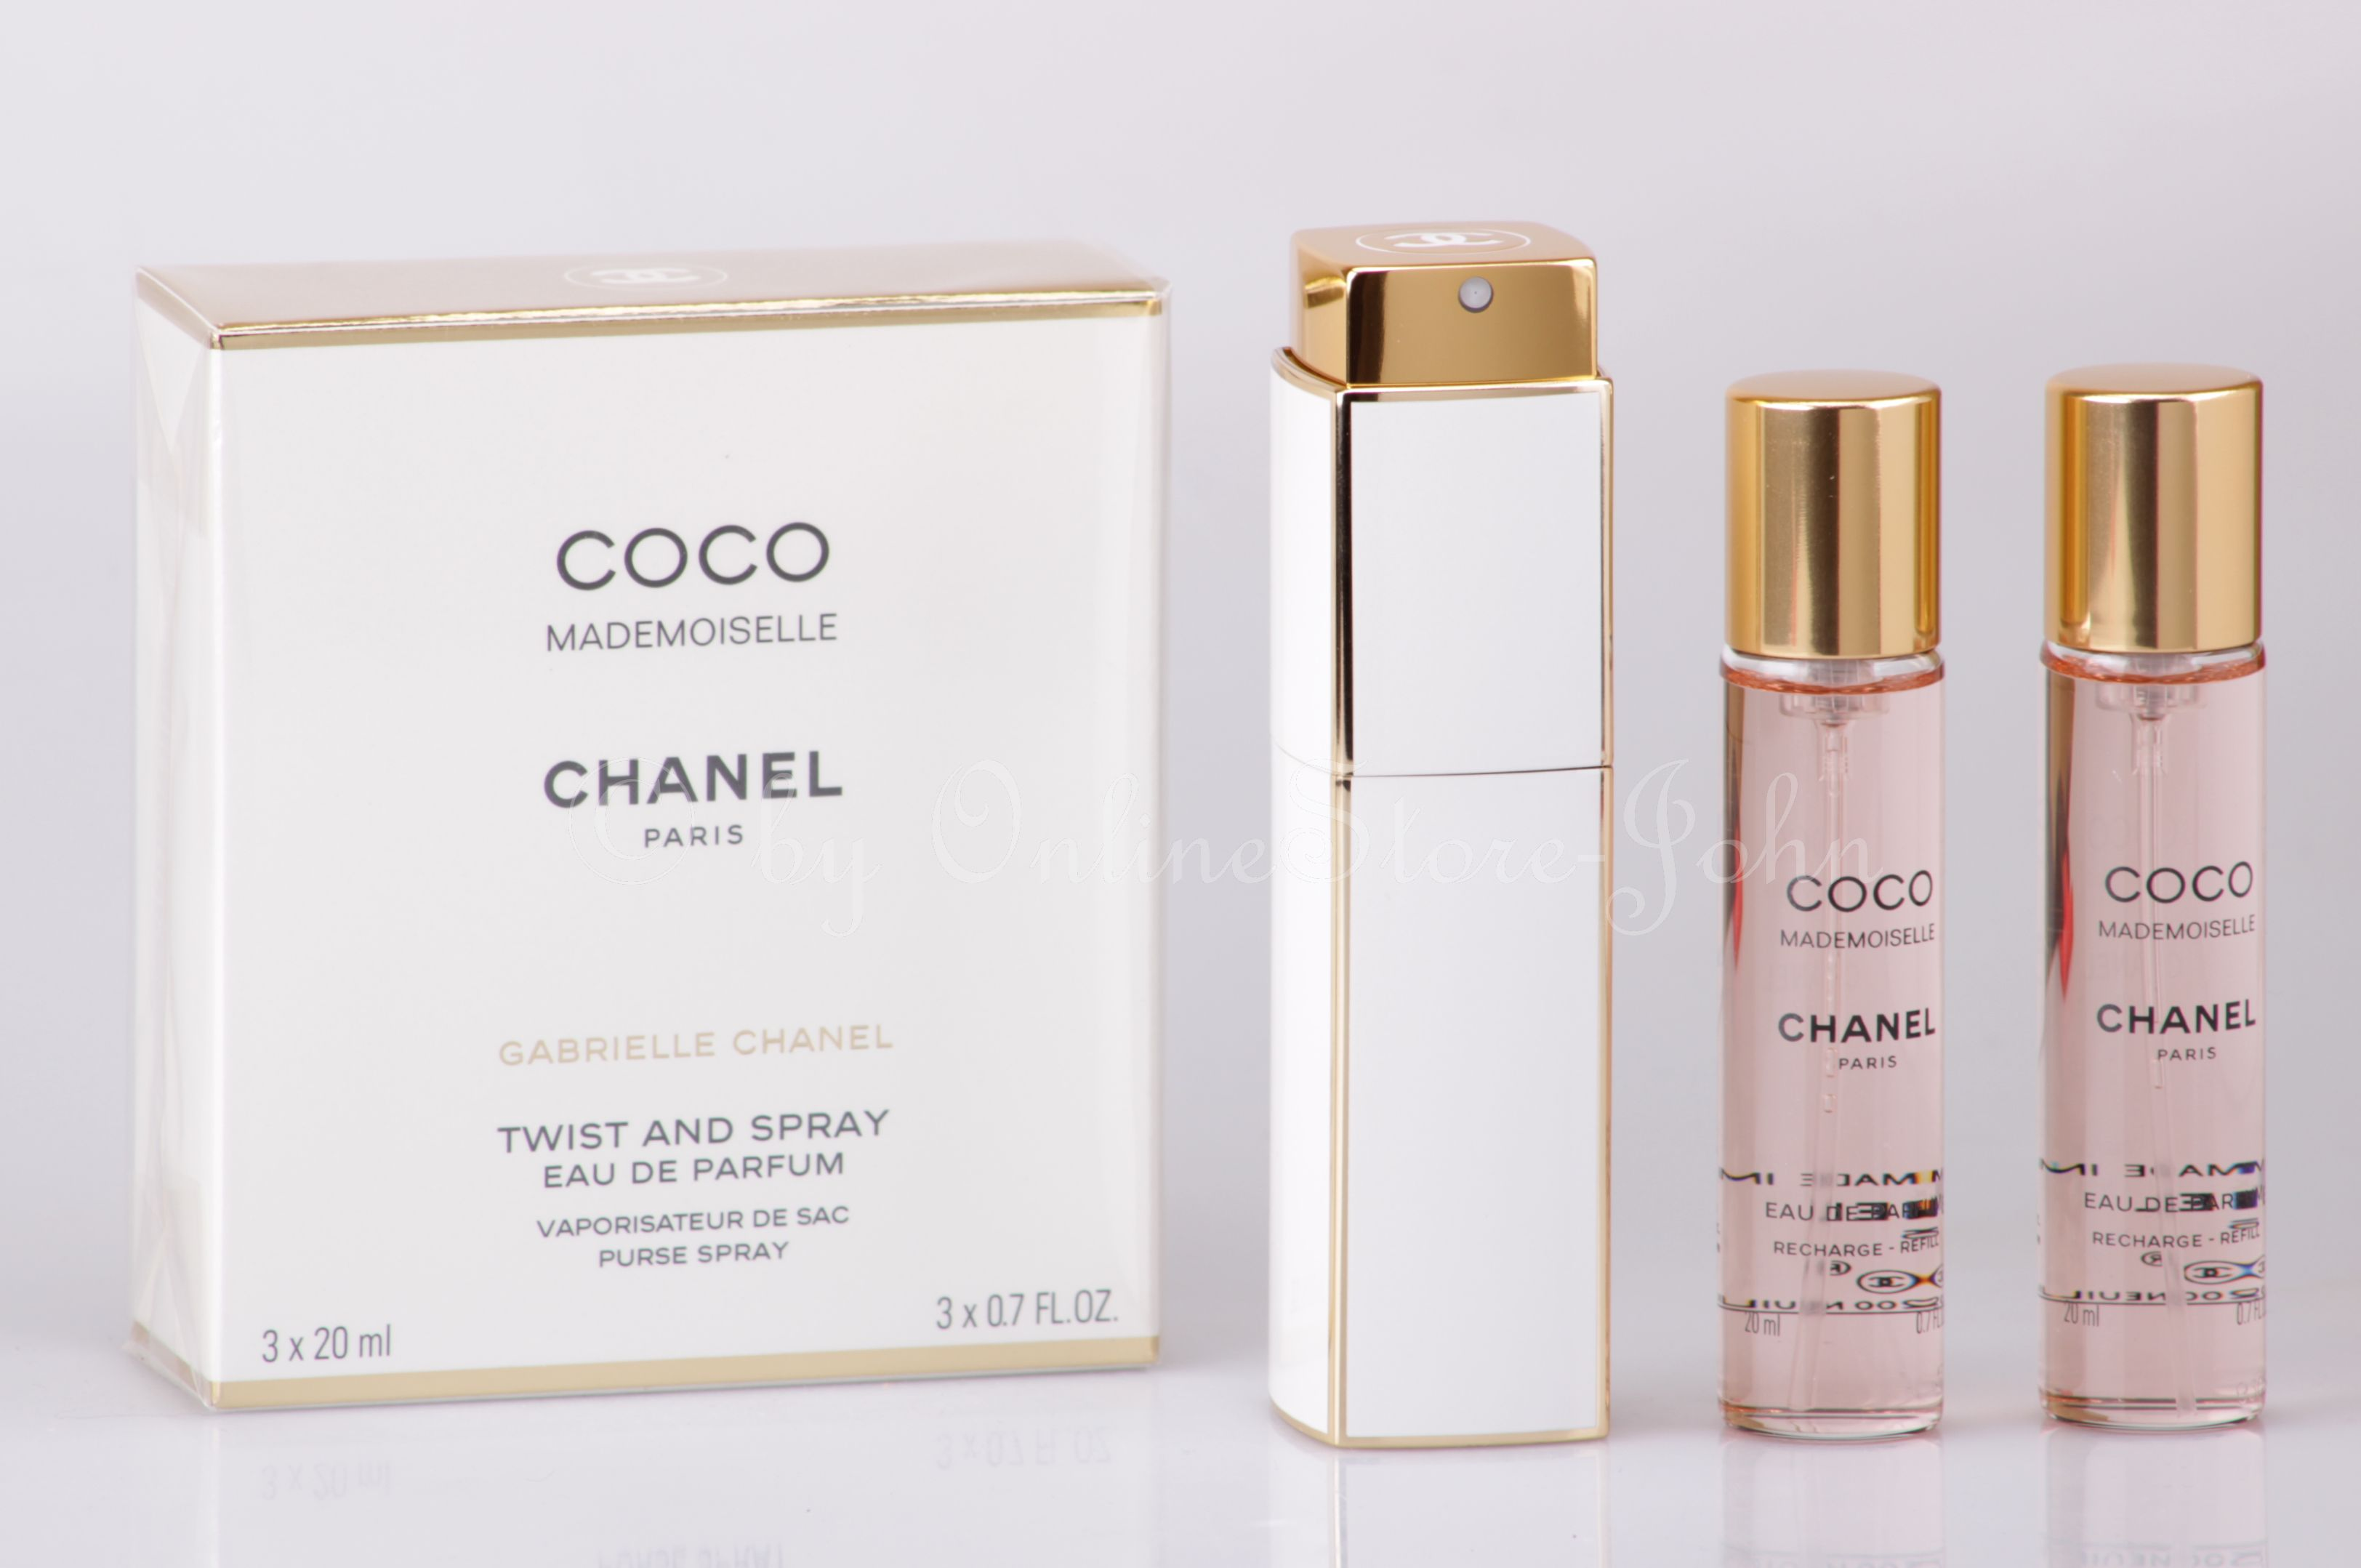 chanel coco mademoiselle twist spray 3 x 20ml 60ml. Black Bedroom Furniture Sets. Home Design Ideas